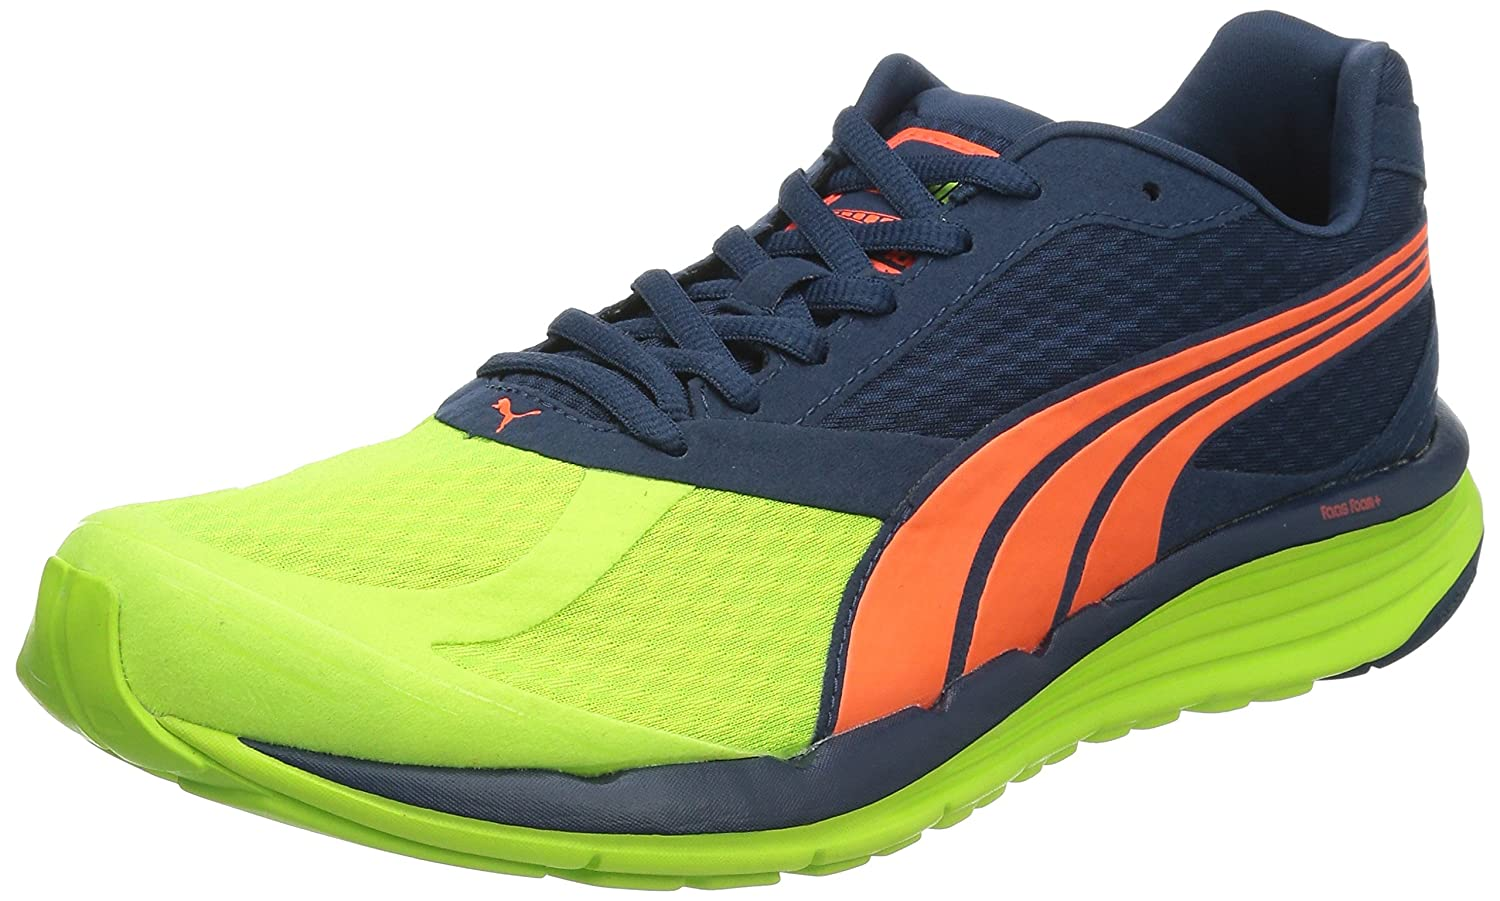 Puma Faas 700 v2 Running Shoe Fluro Yellow   Insig  Amazon.co.uk  Shoes    Bags caae38093